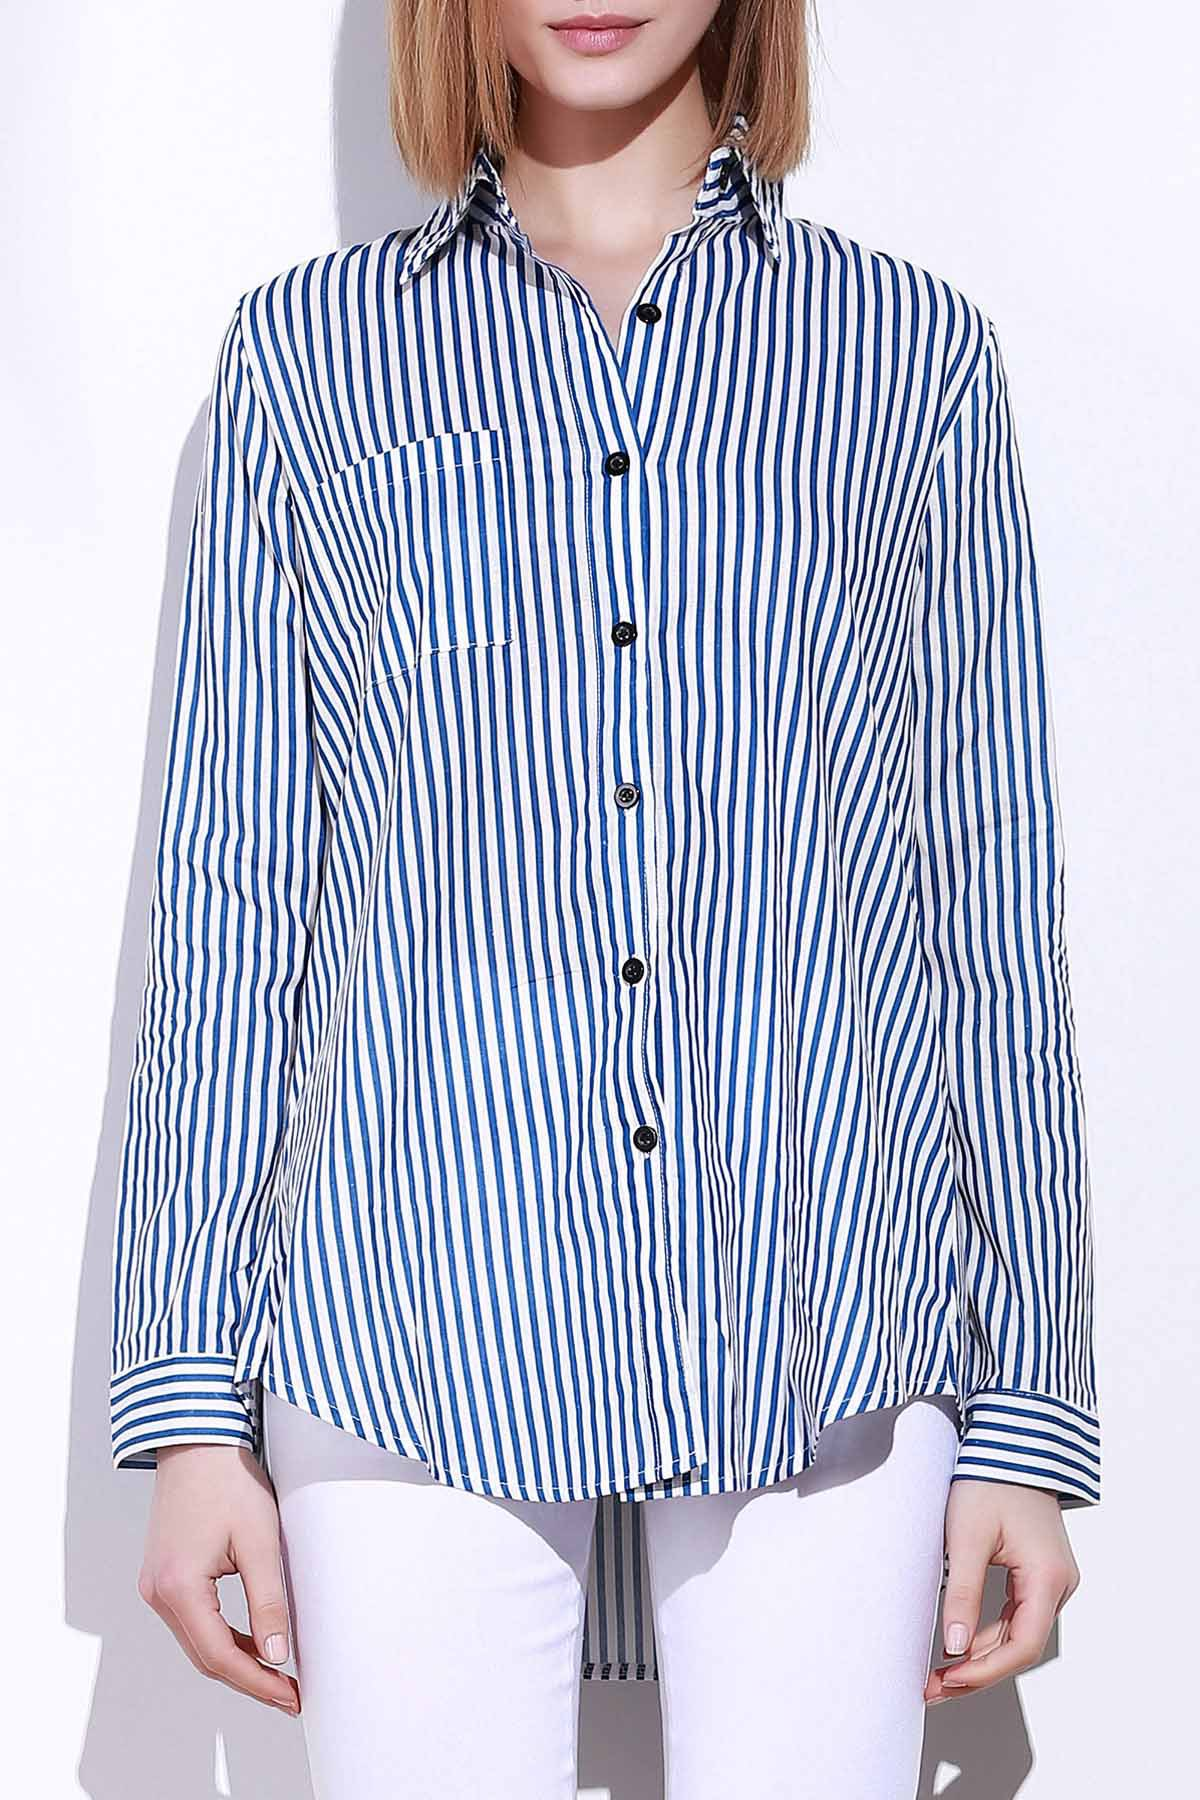 Blue White Stripes Long Sleeve Shirt 144905102